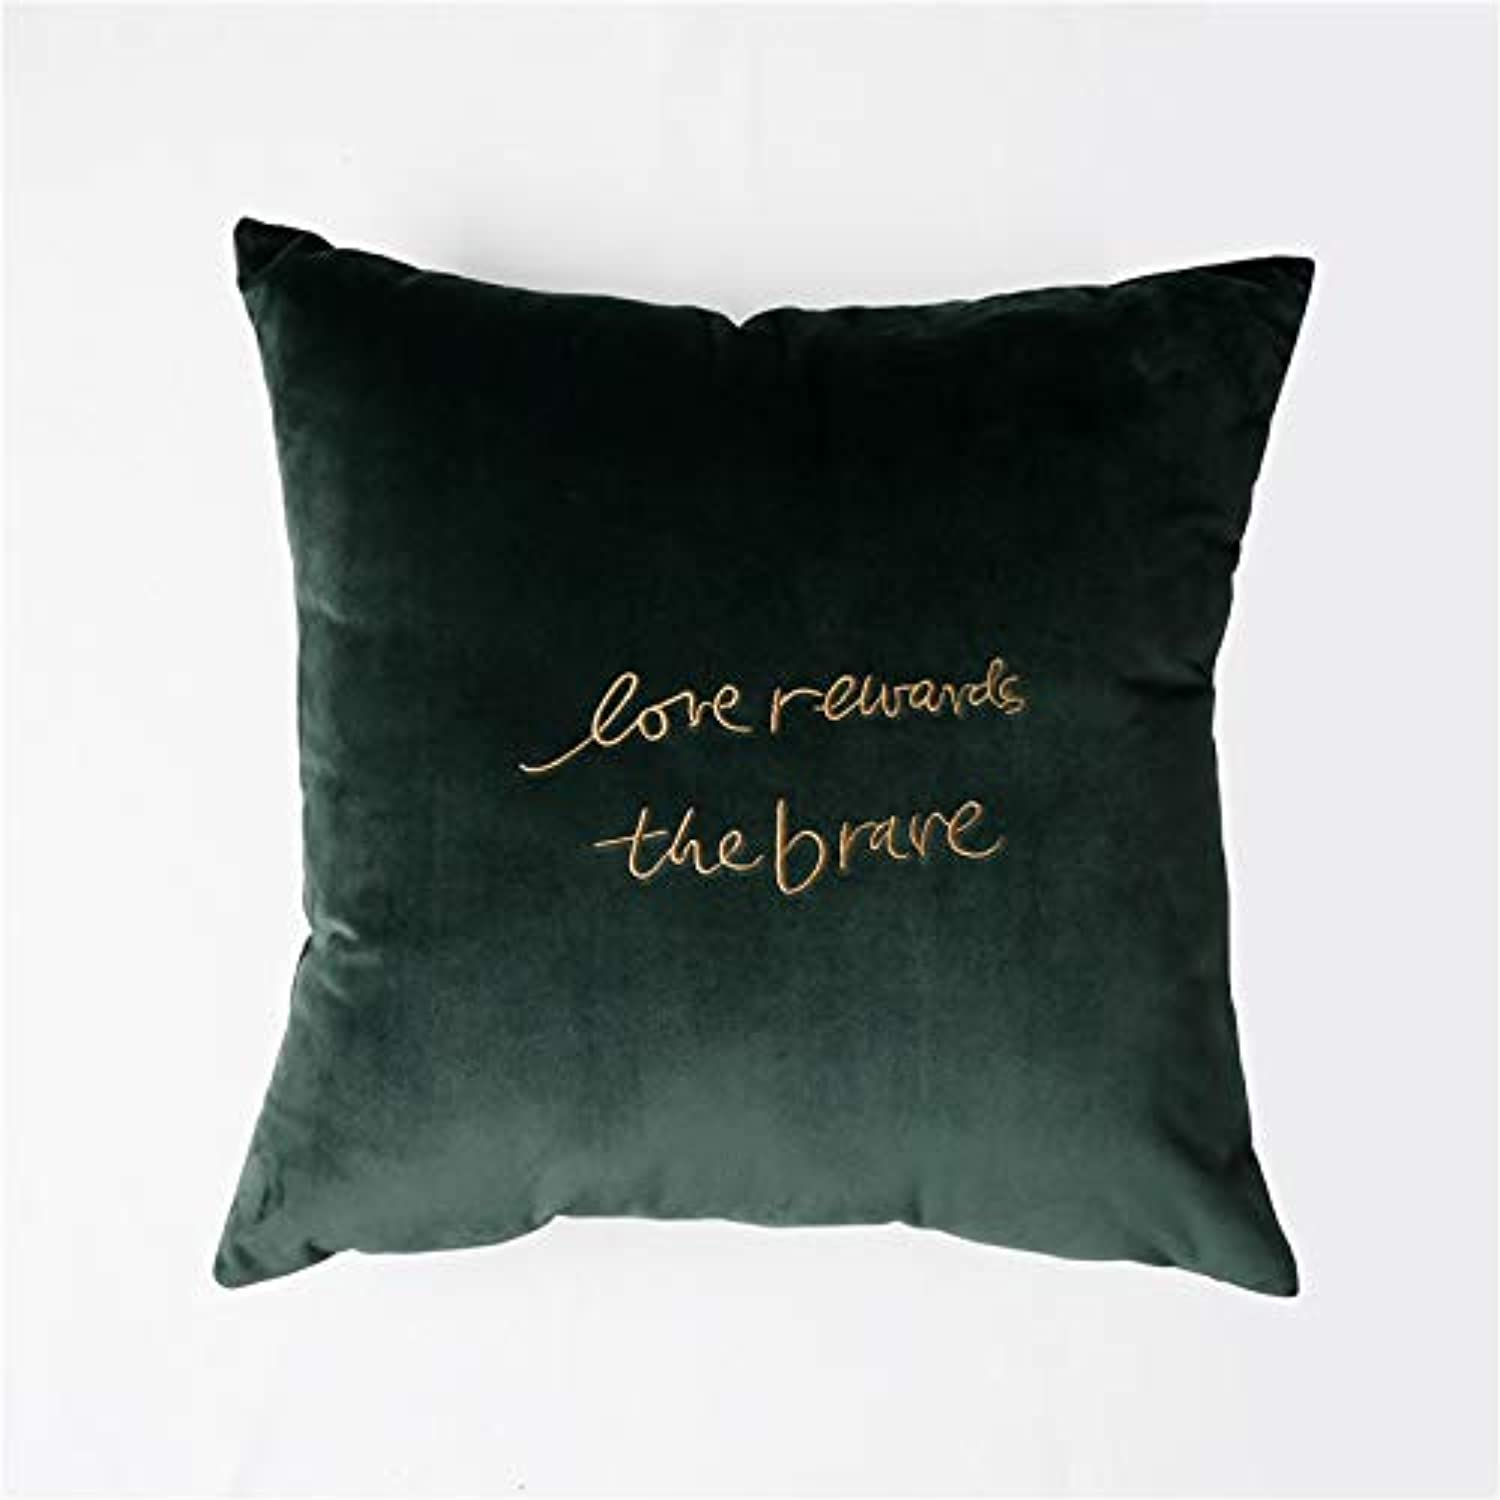 LLIND Home Nordic Netherlands Velvet Solid color Embroidery Pillow Modern Minimalist Fabric Sofa Cushion Cushion (color   Olive Green Black)